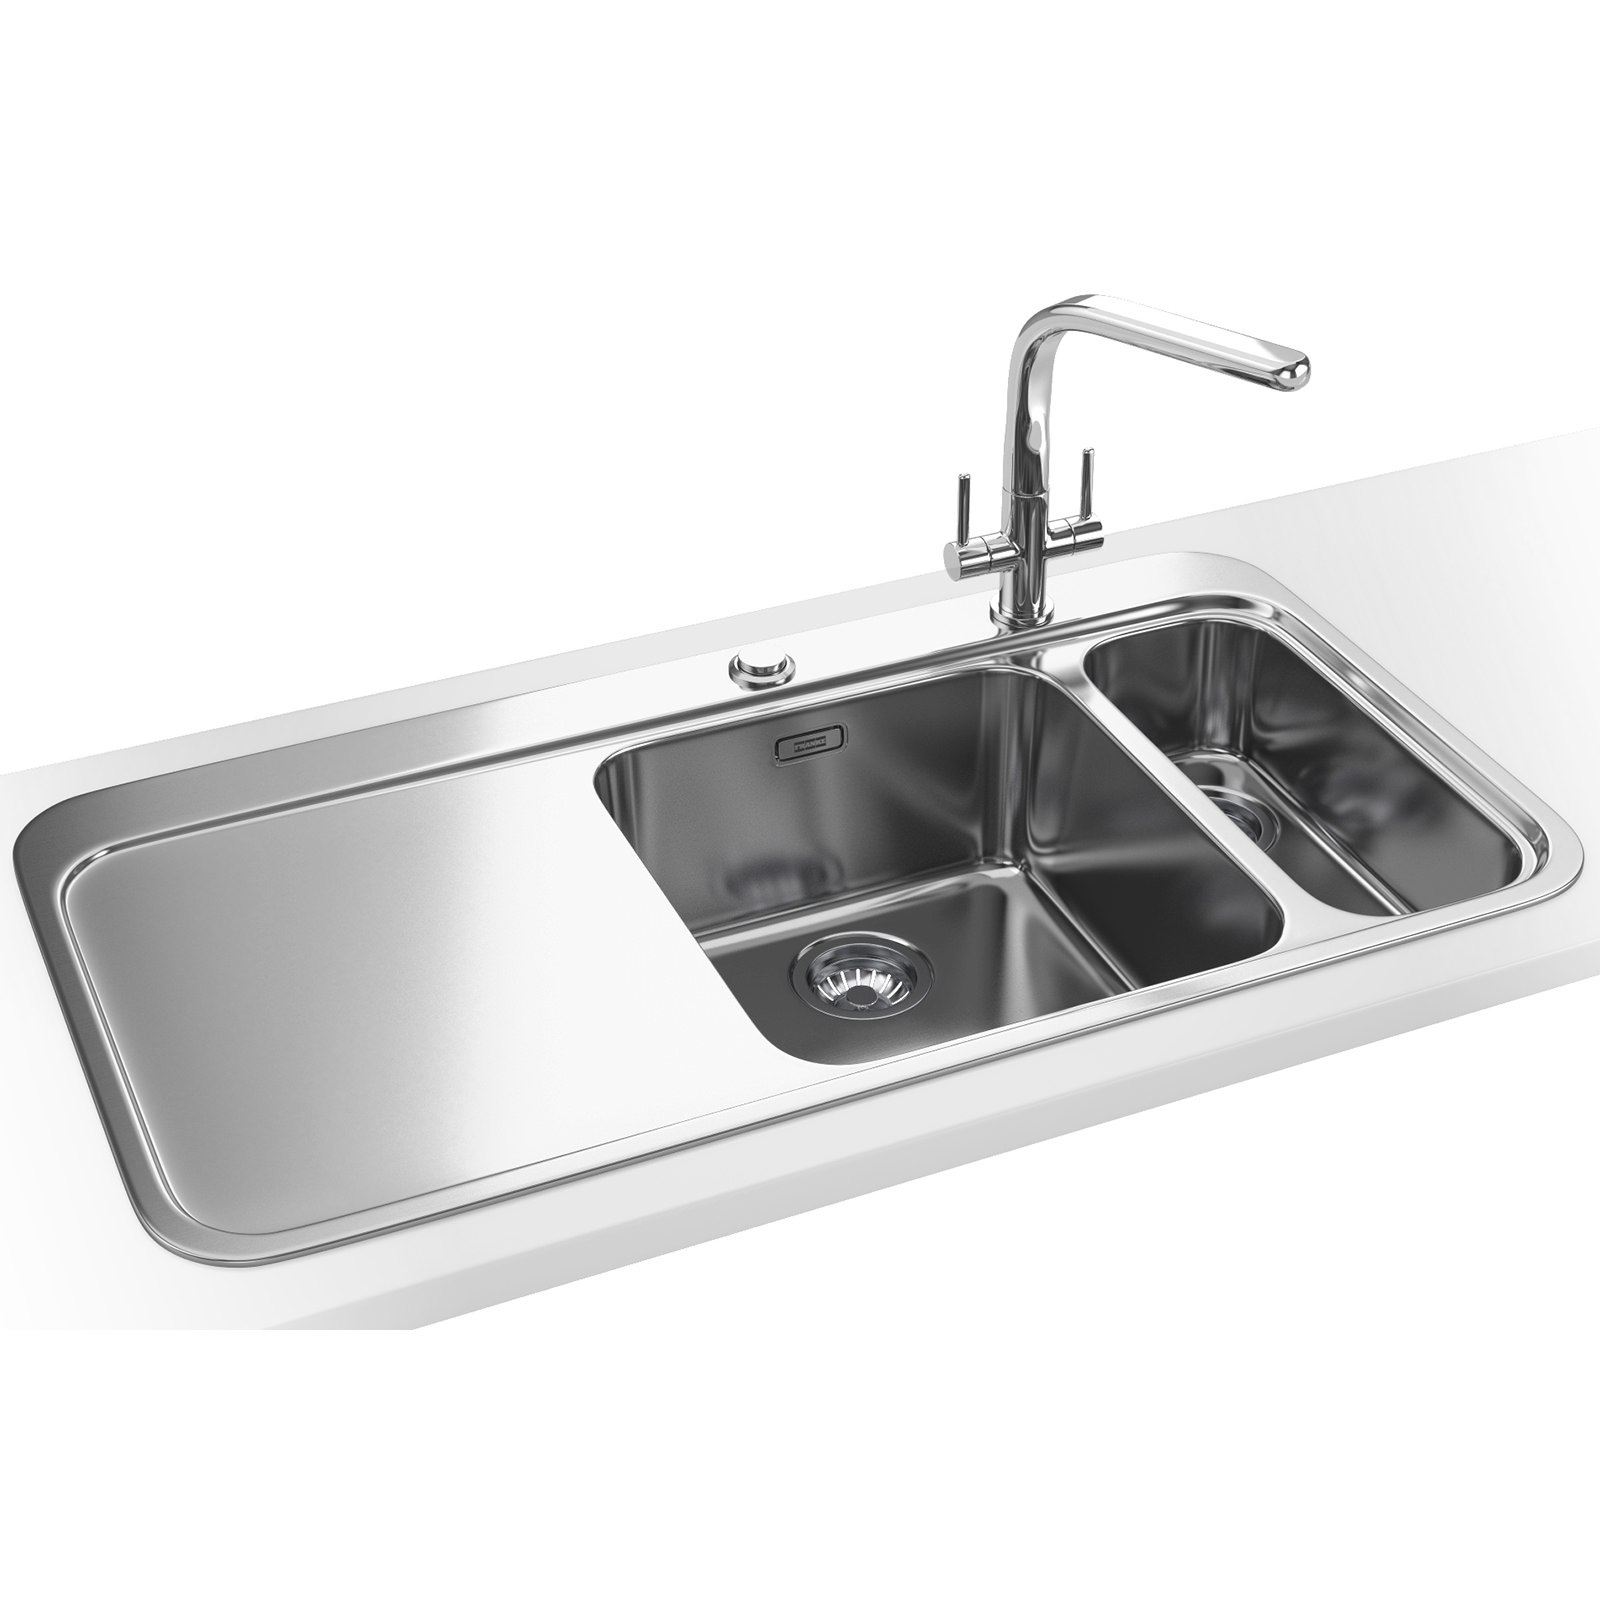 Franke Sinos Dp Snx 261 1 5 Bowl Stainless Steel Sink And Tap 1270364712